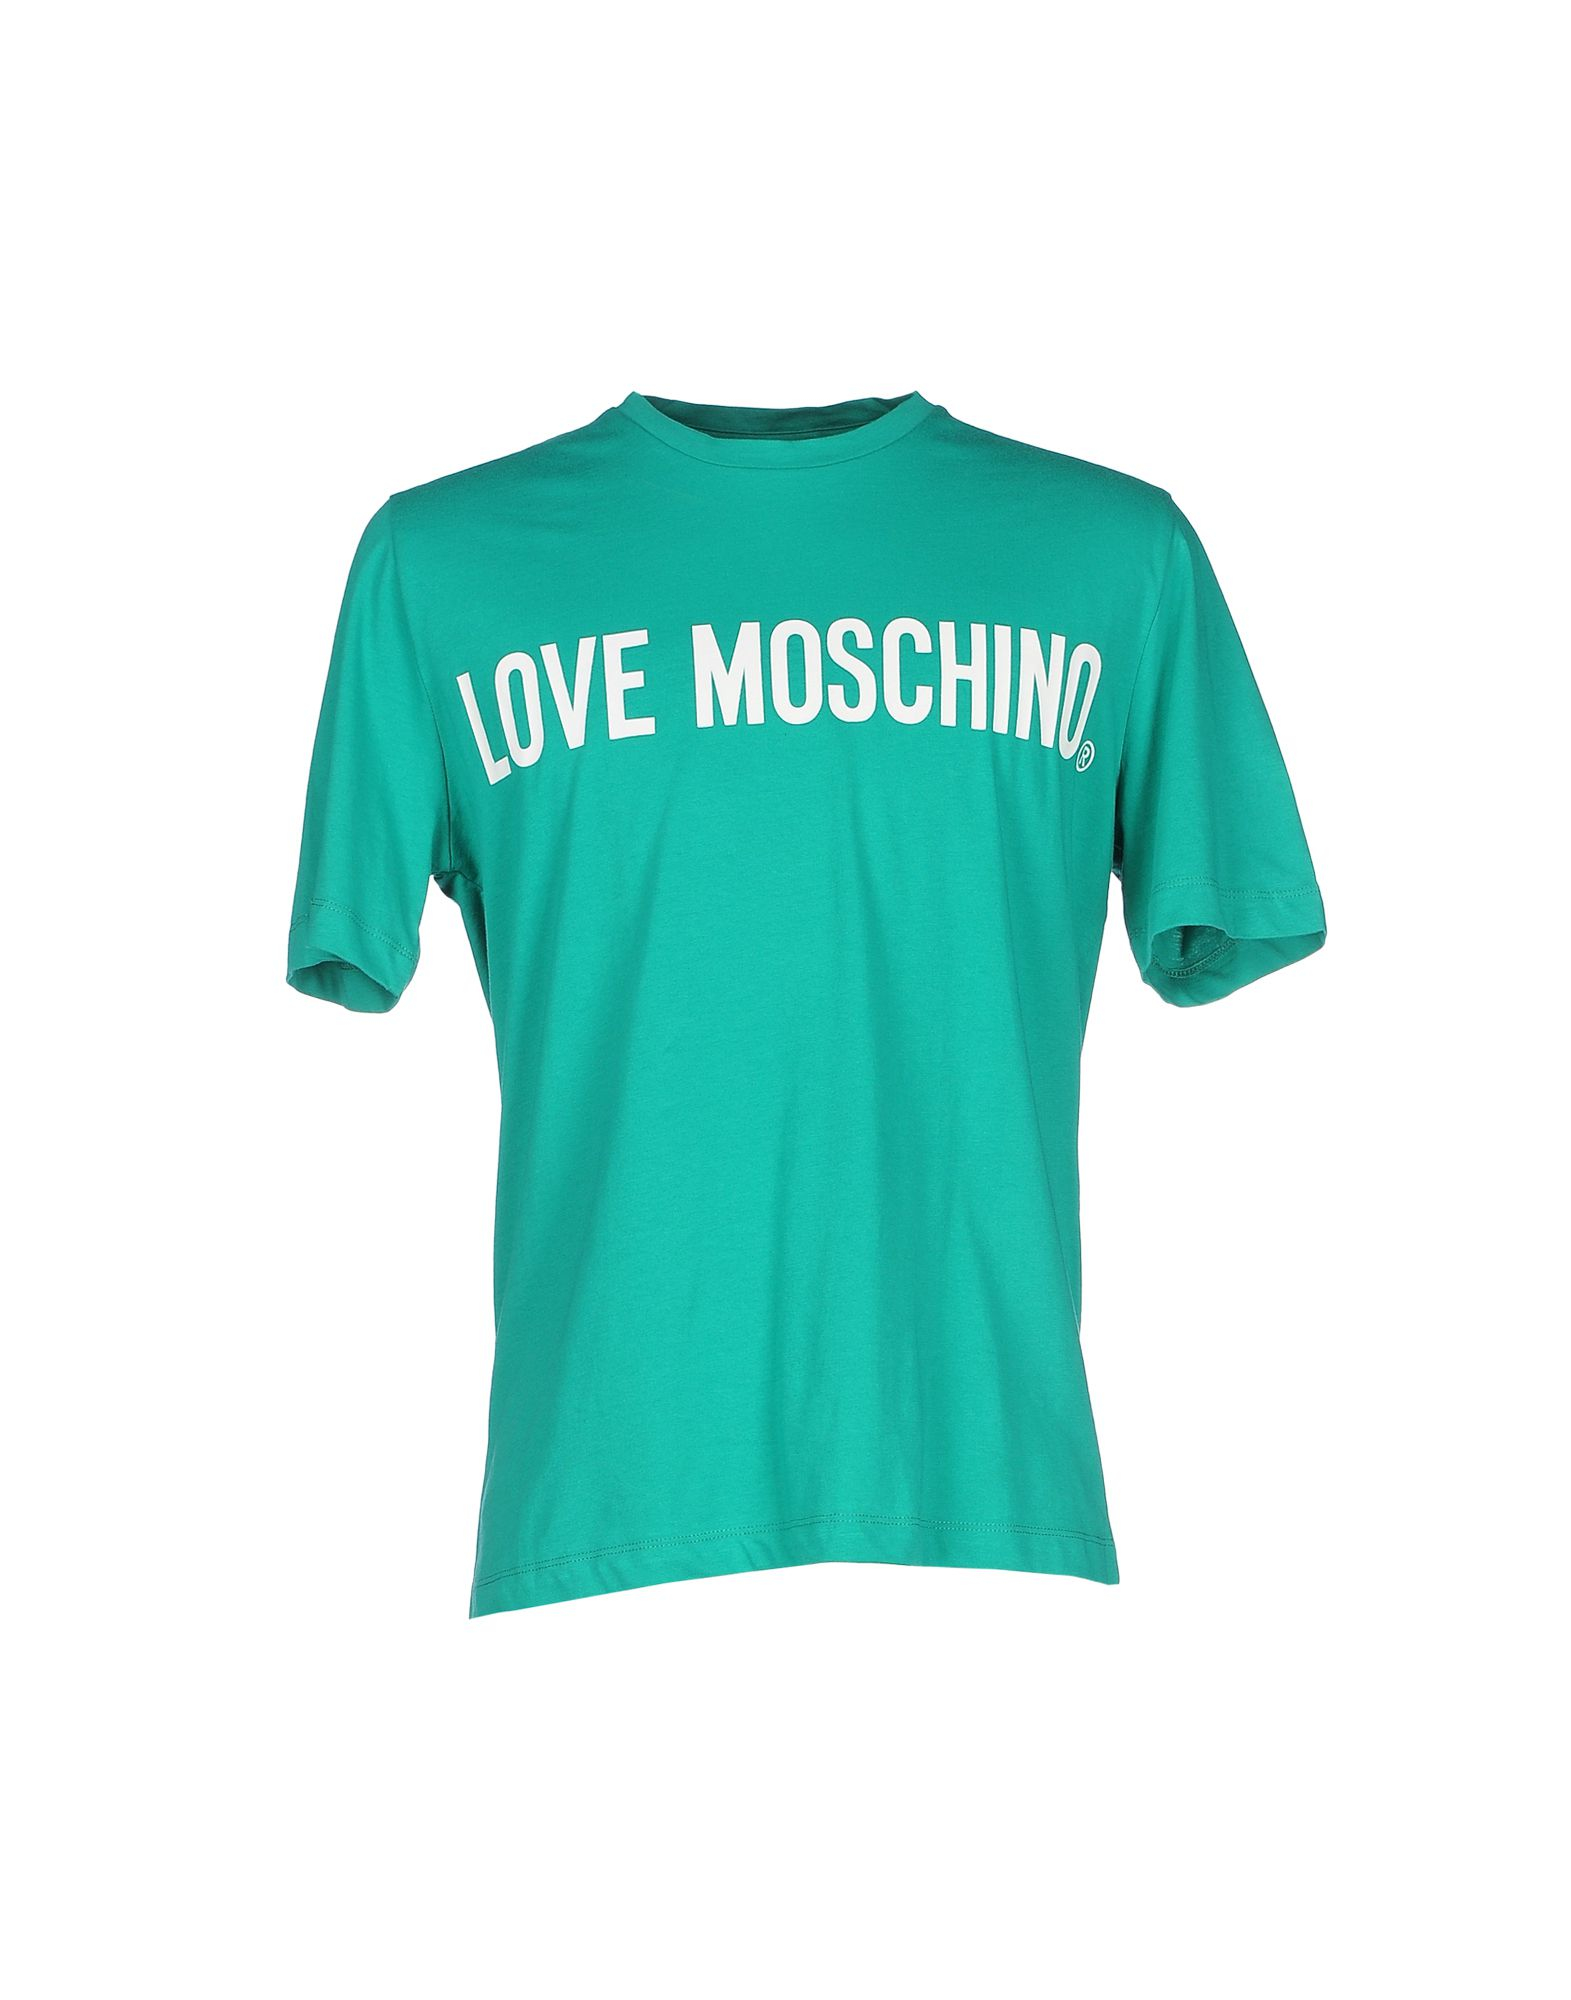 lyst love moschino t shirt in green for men. Black Bedroom Furniture Sets. Home Design Ideas